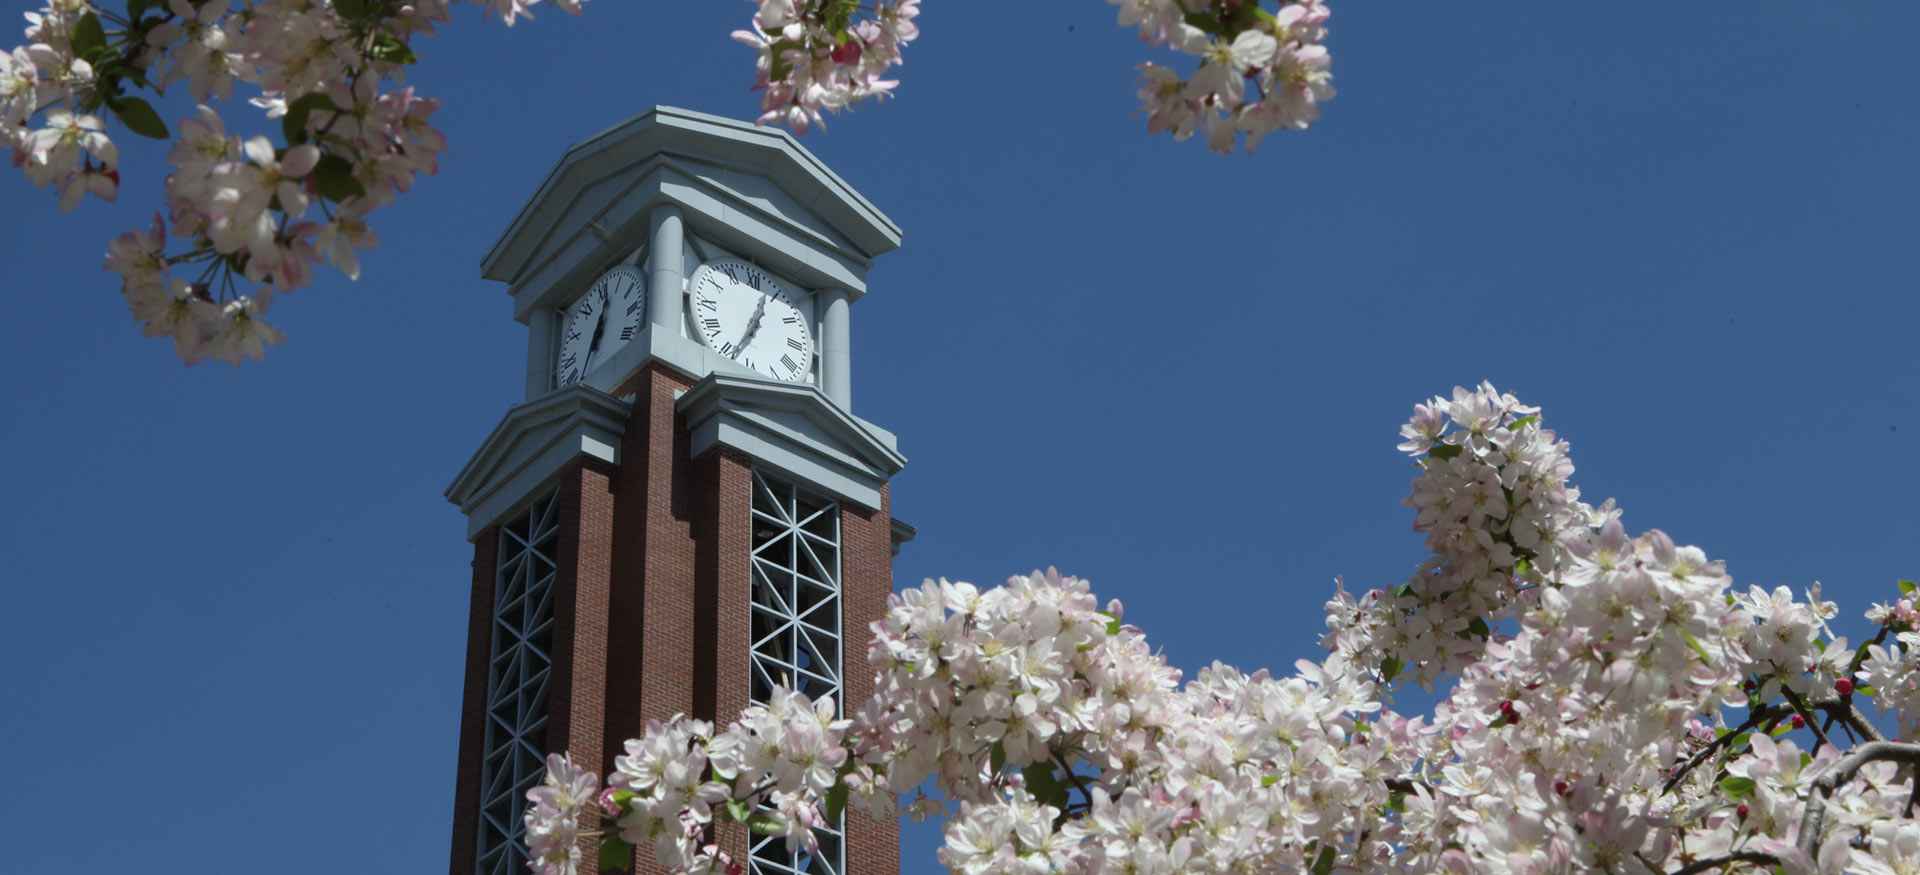 View of the Eastern clocktower with white flowers in the foreground